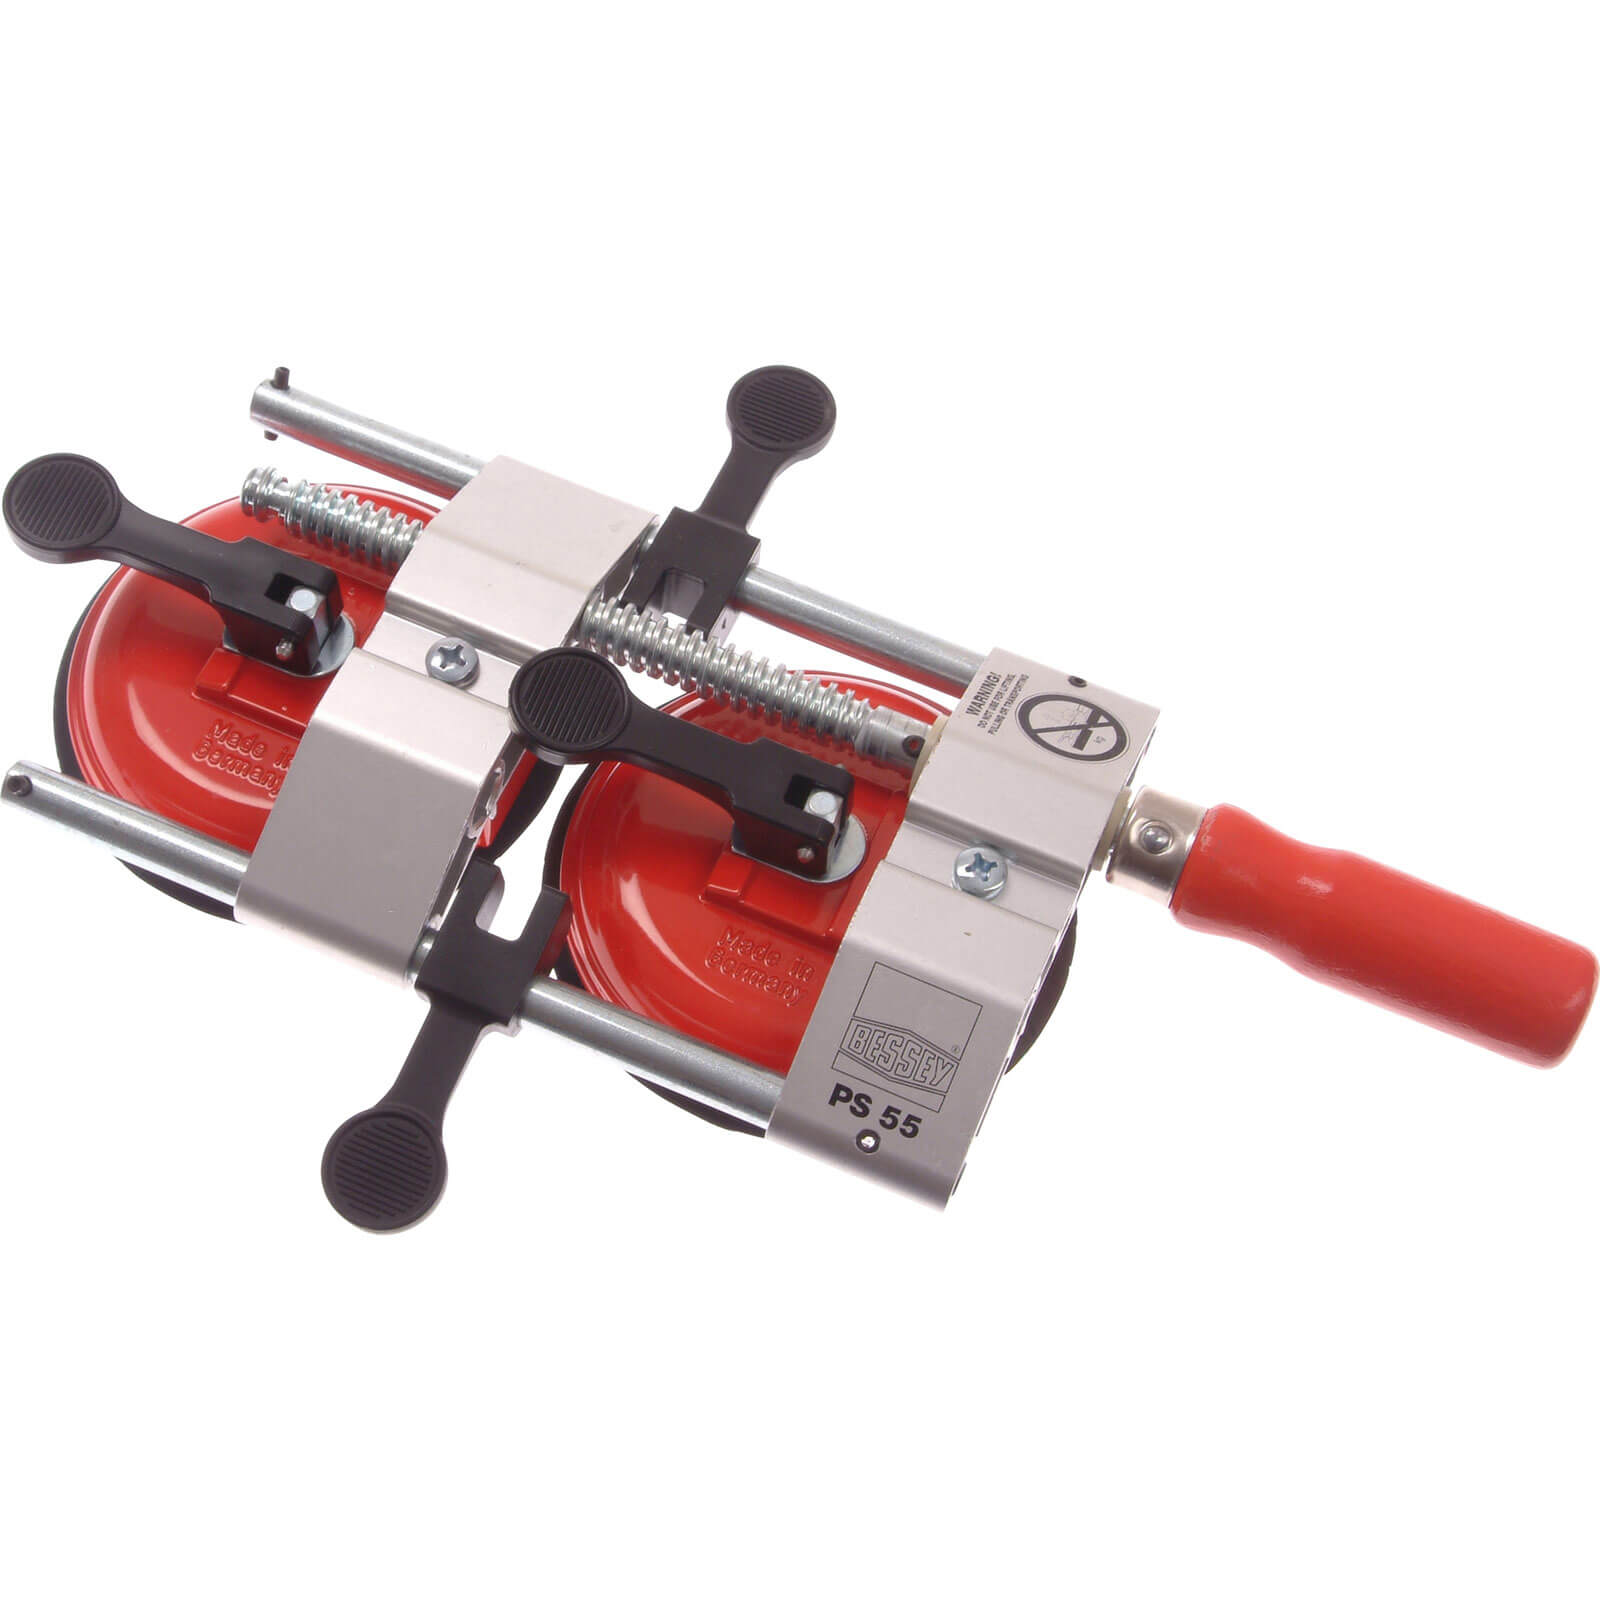 Image of Bessey PS-55 Seaming Clamp Together Clamp